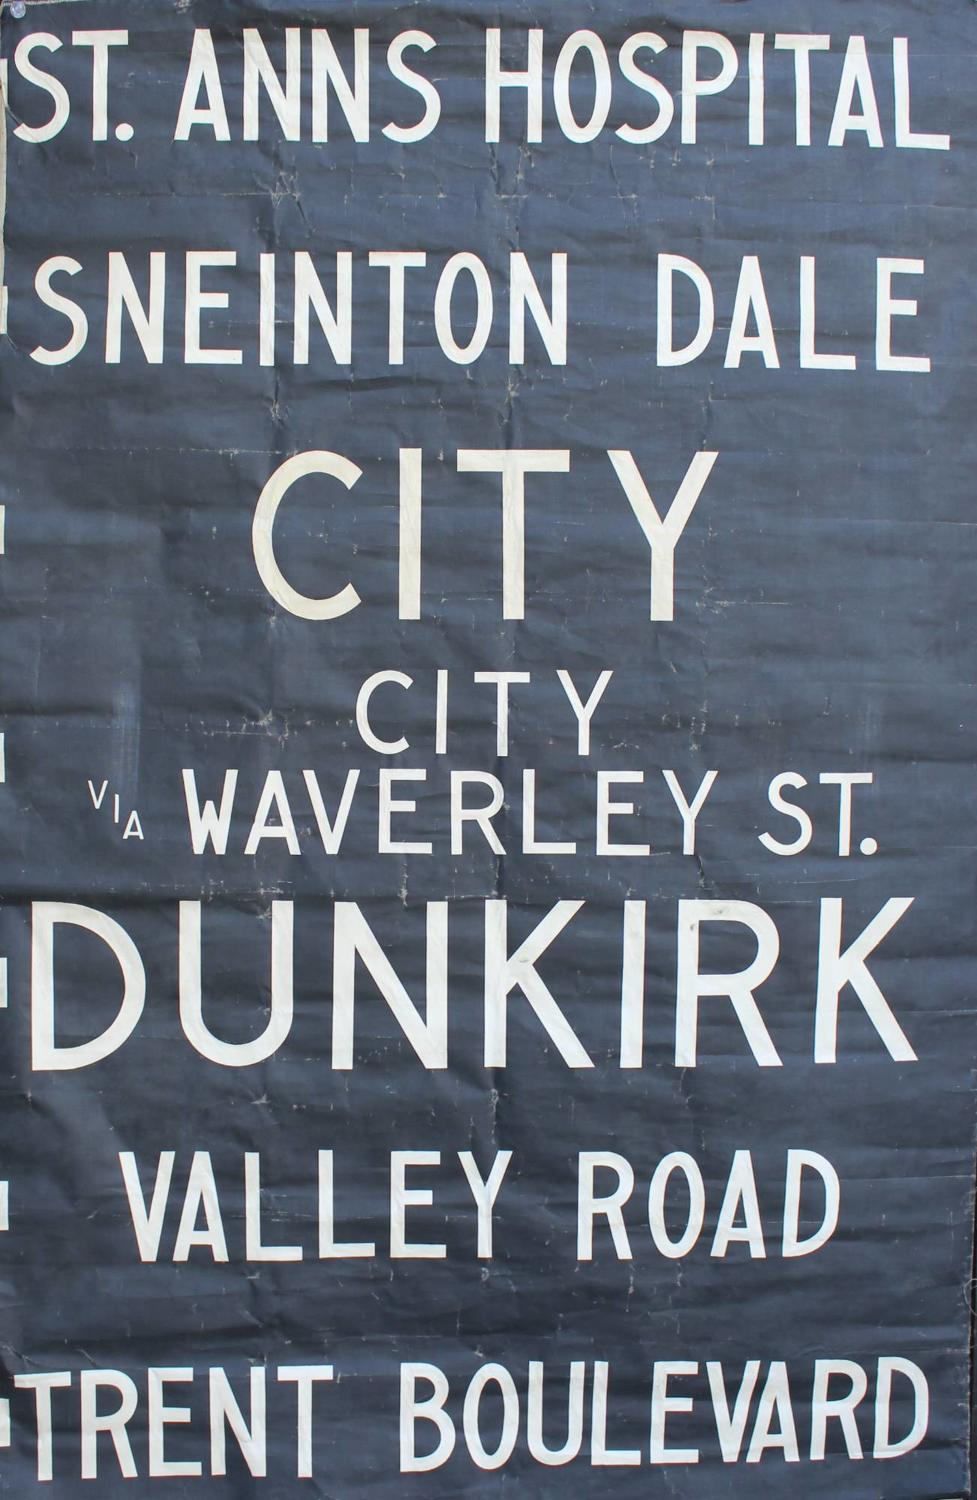 An Original 1960s Bus Destination Linen Blind